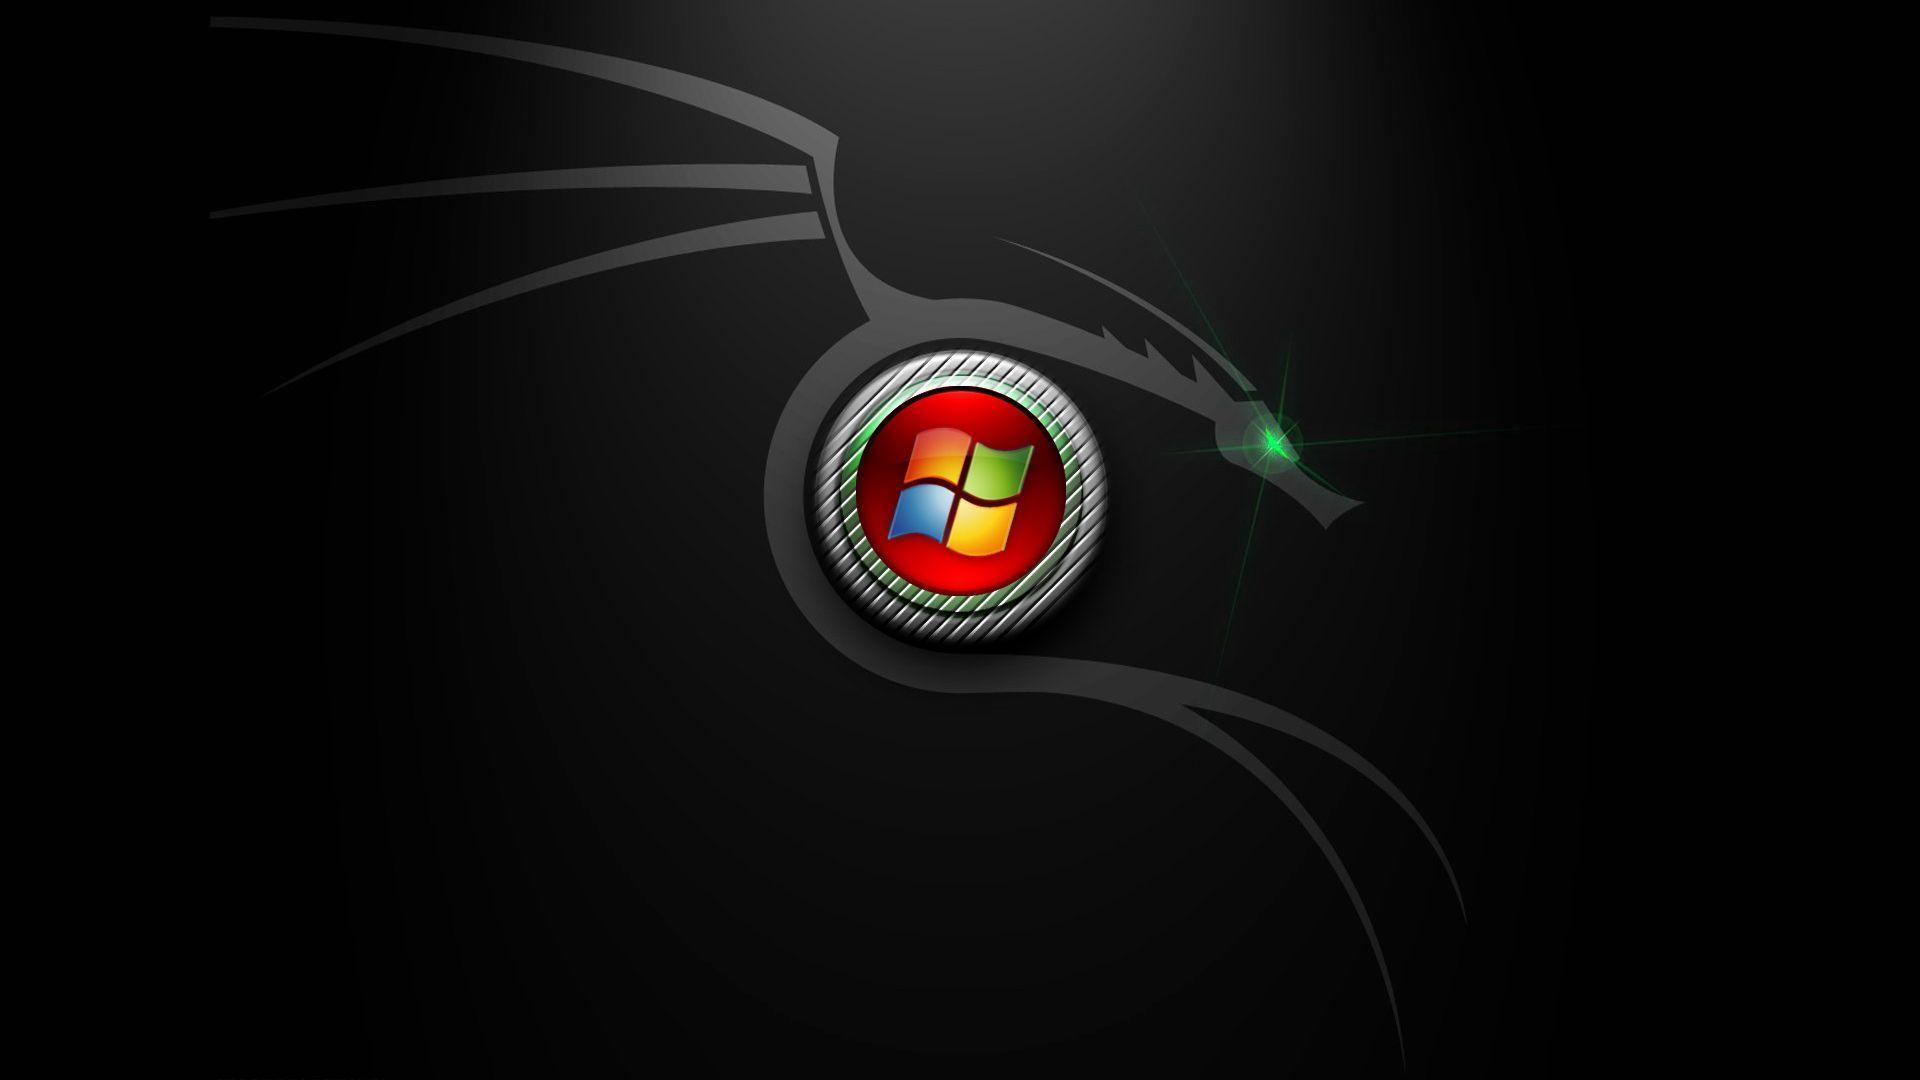 Image For > Windows Logo Wallpapers Black